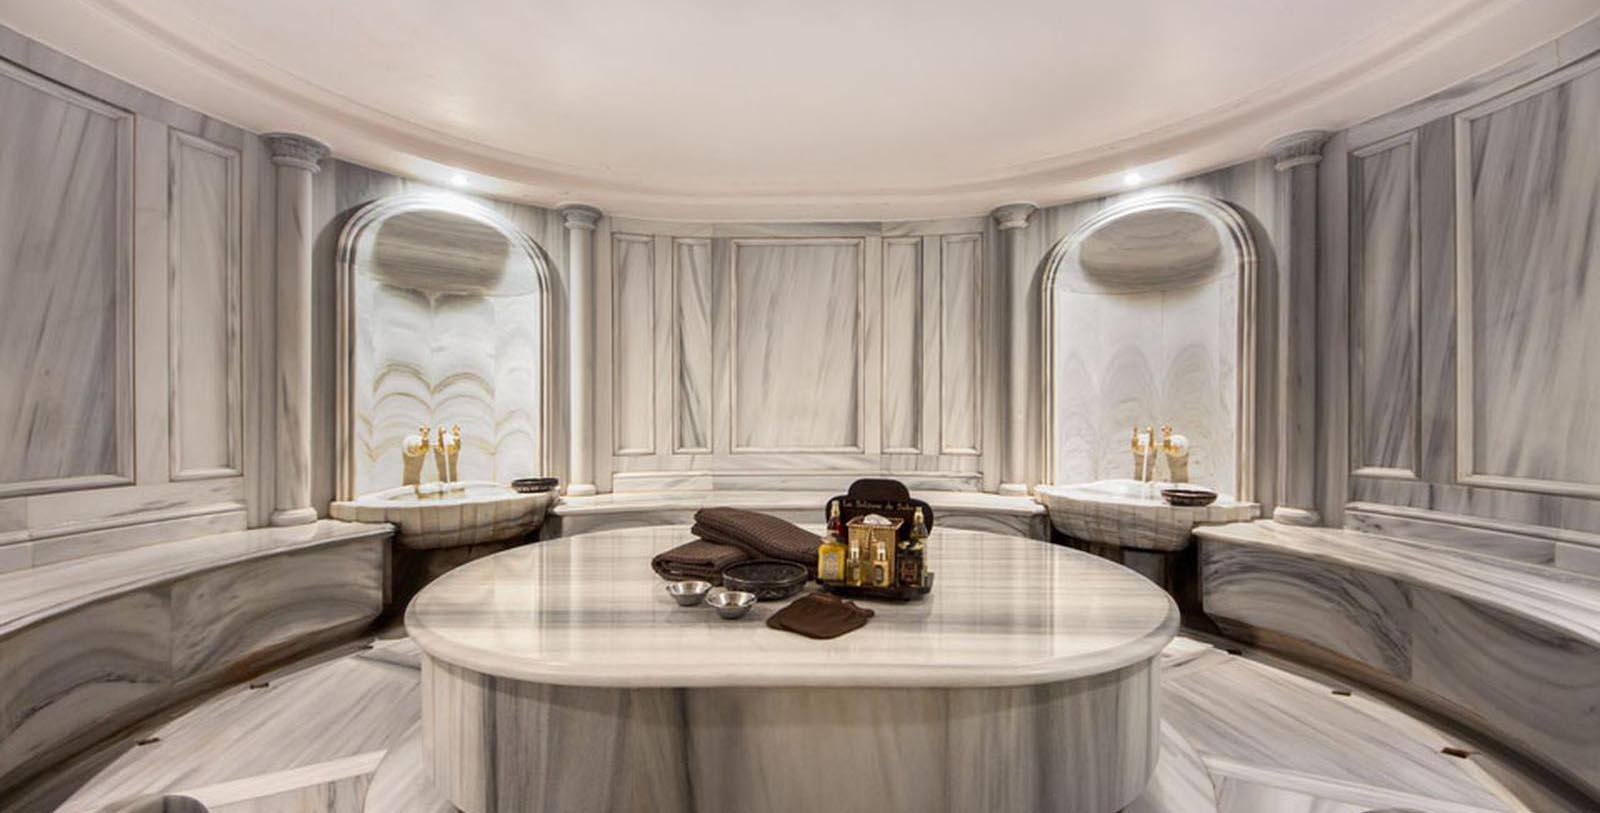 Image of Le Kalon Spa at The Bentley London, 1880, Member of Historic Hotels Worldwide, in London, England, United Kingdom, Hot Deals